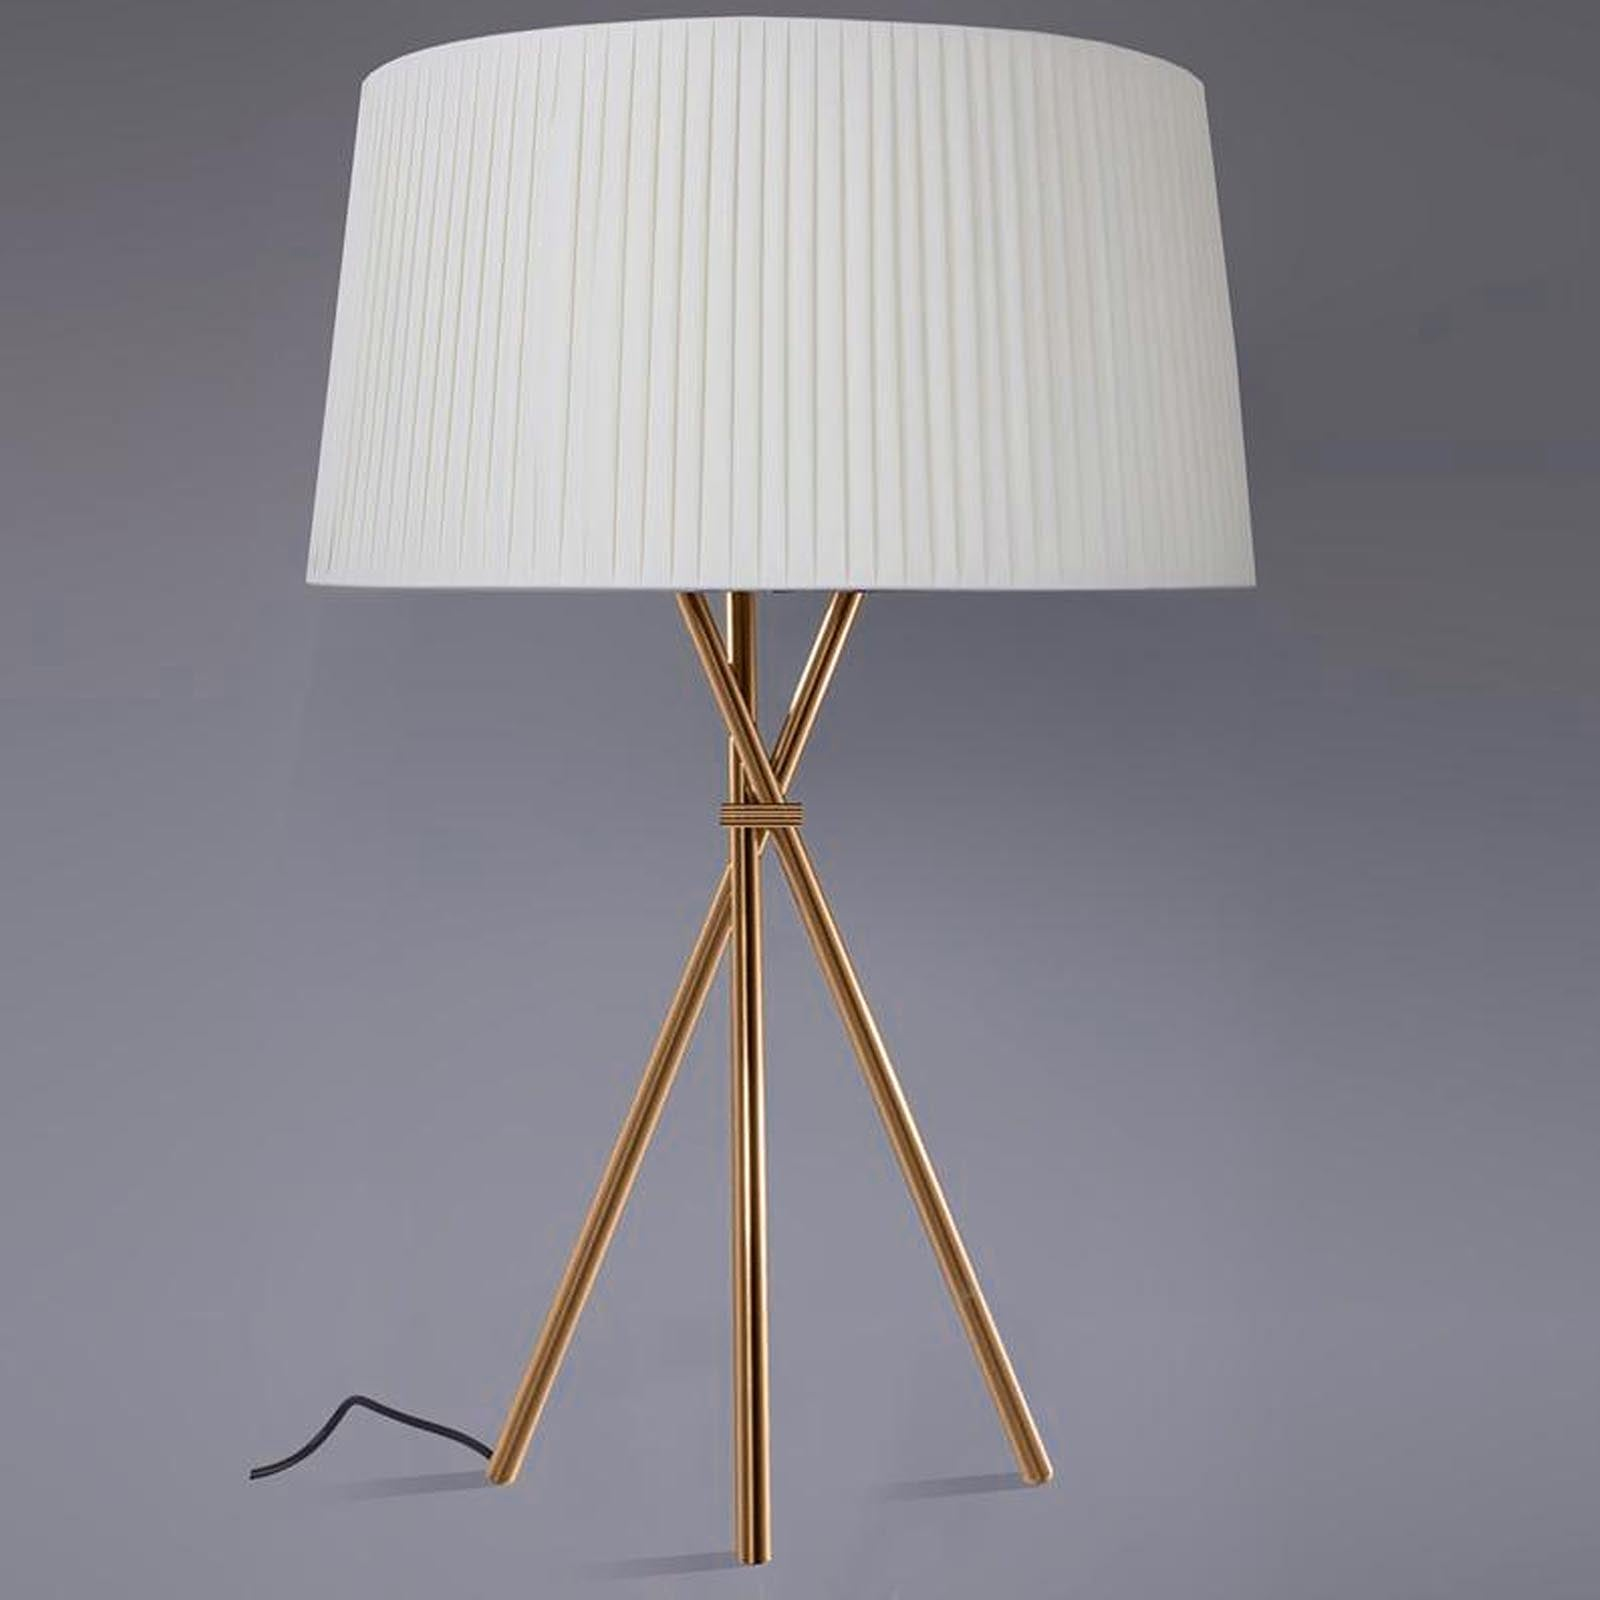 Table lamp CY-LTD-101/048-G - ebarza